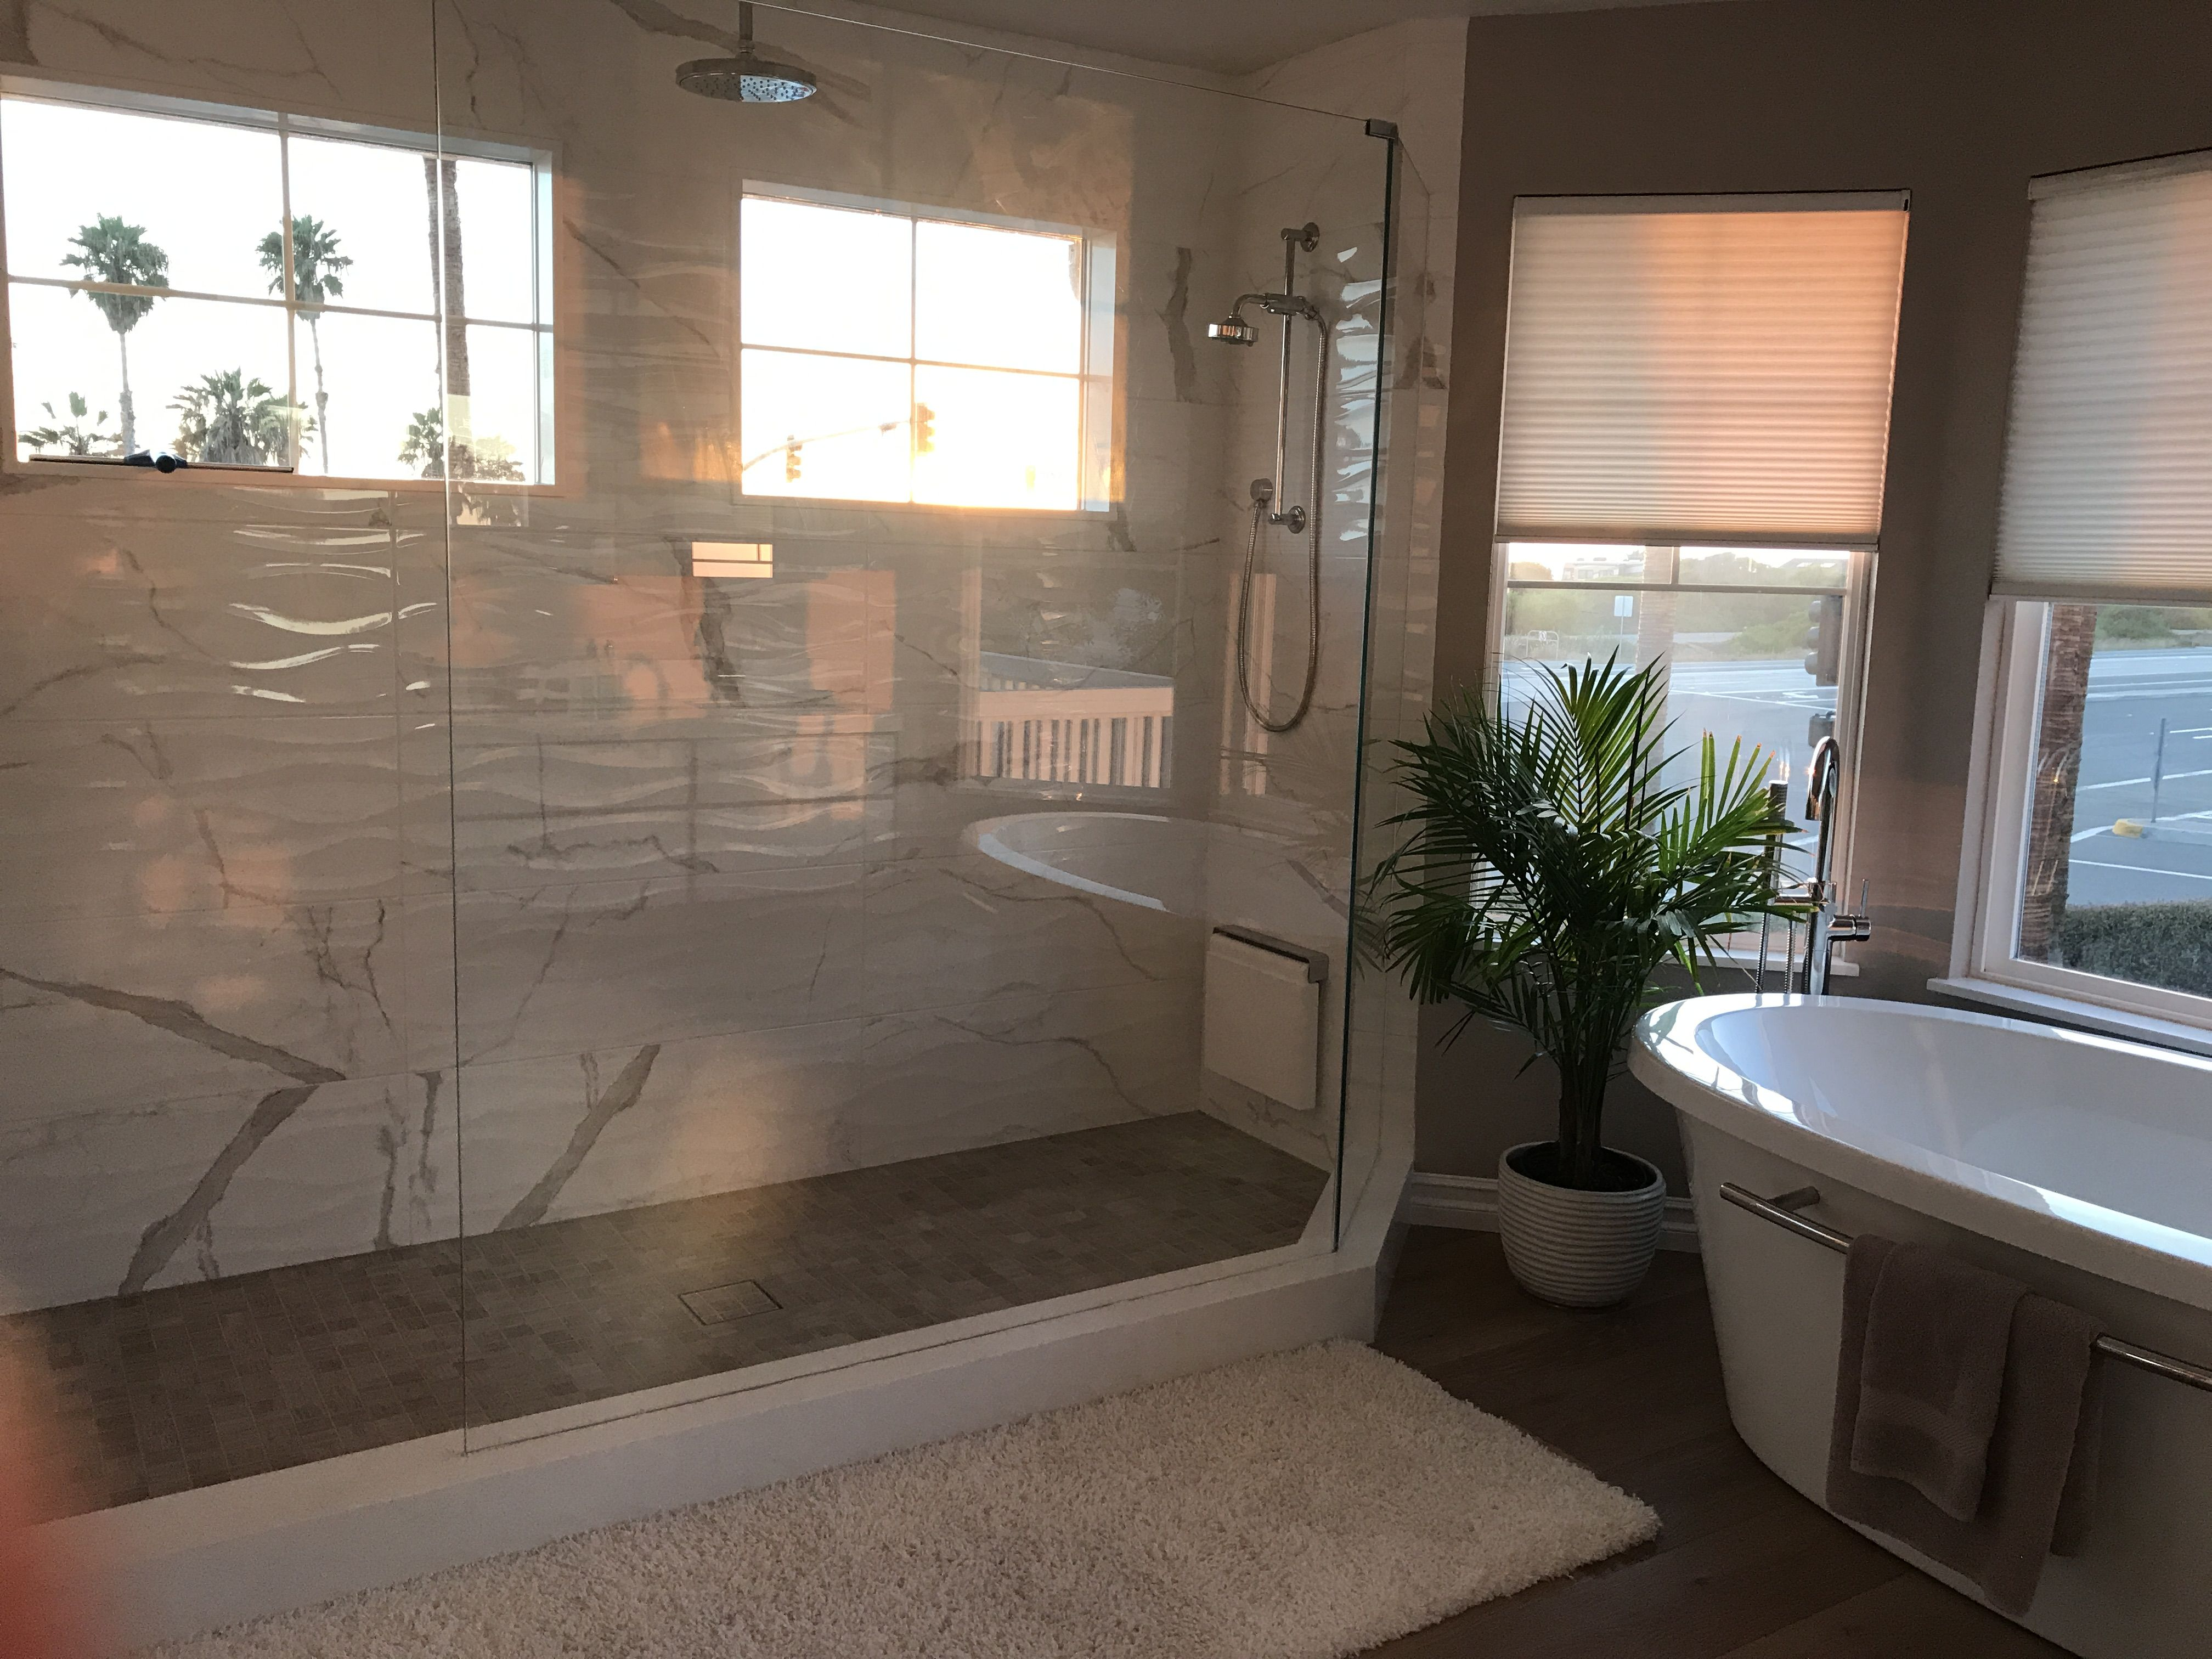 Bathroom Renovations Bathrooms Toilets Bath Room Master Bathrooms Bathroom Remodeling